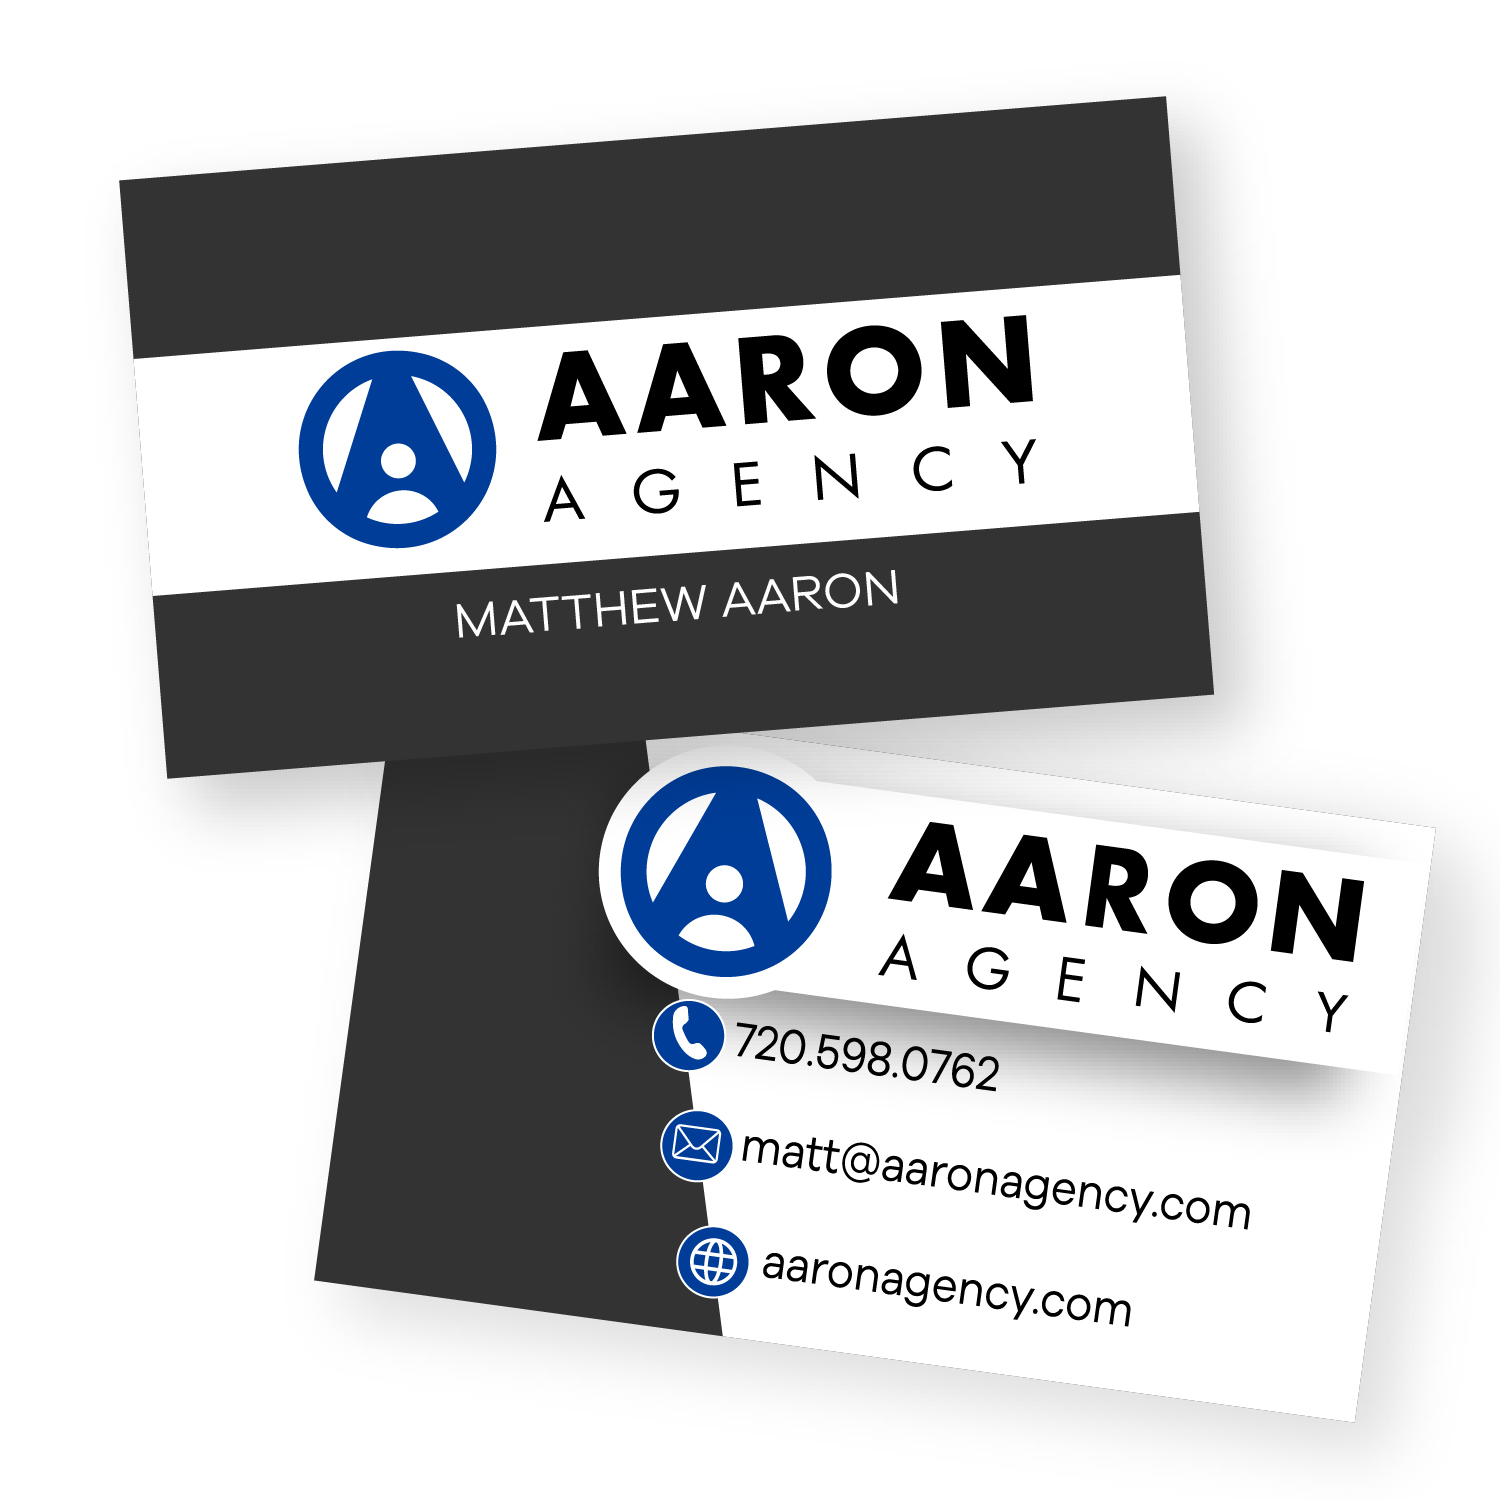 Aaron Agency Denver, CO